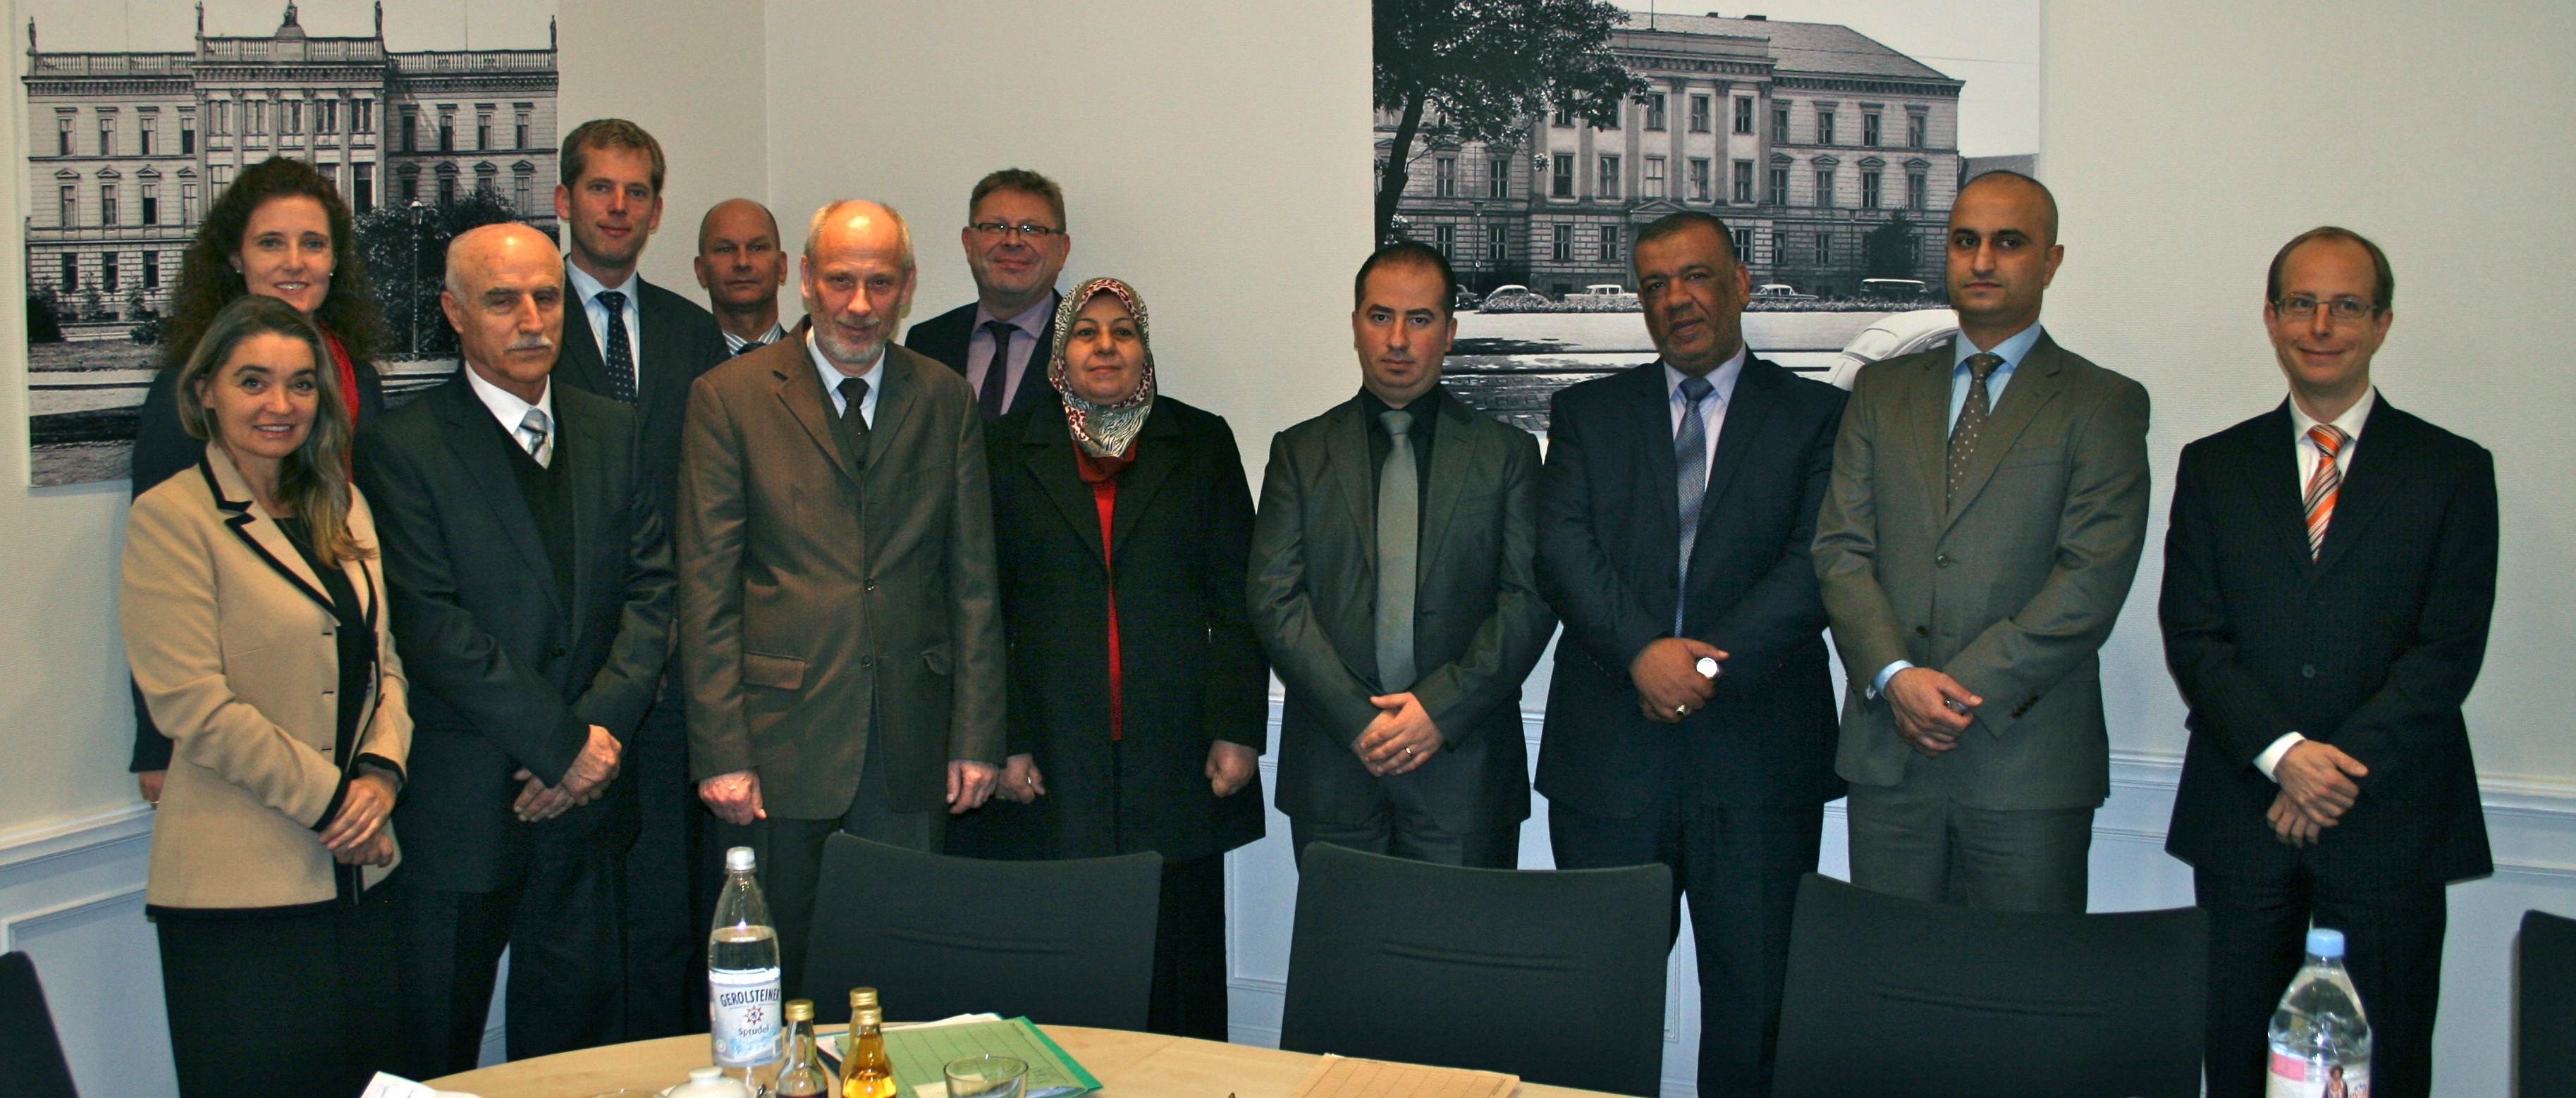 Maria Grazia Benedetti with Uli Schiefelbein with State Secretary Krems, instructors and participants in the EUJUST LEX Iraq Course in Nordrhein-Westfalen